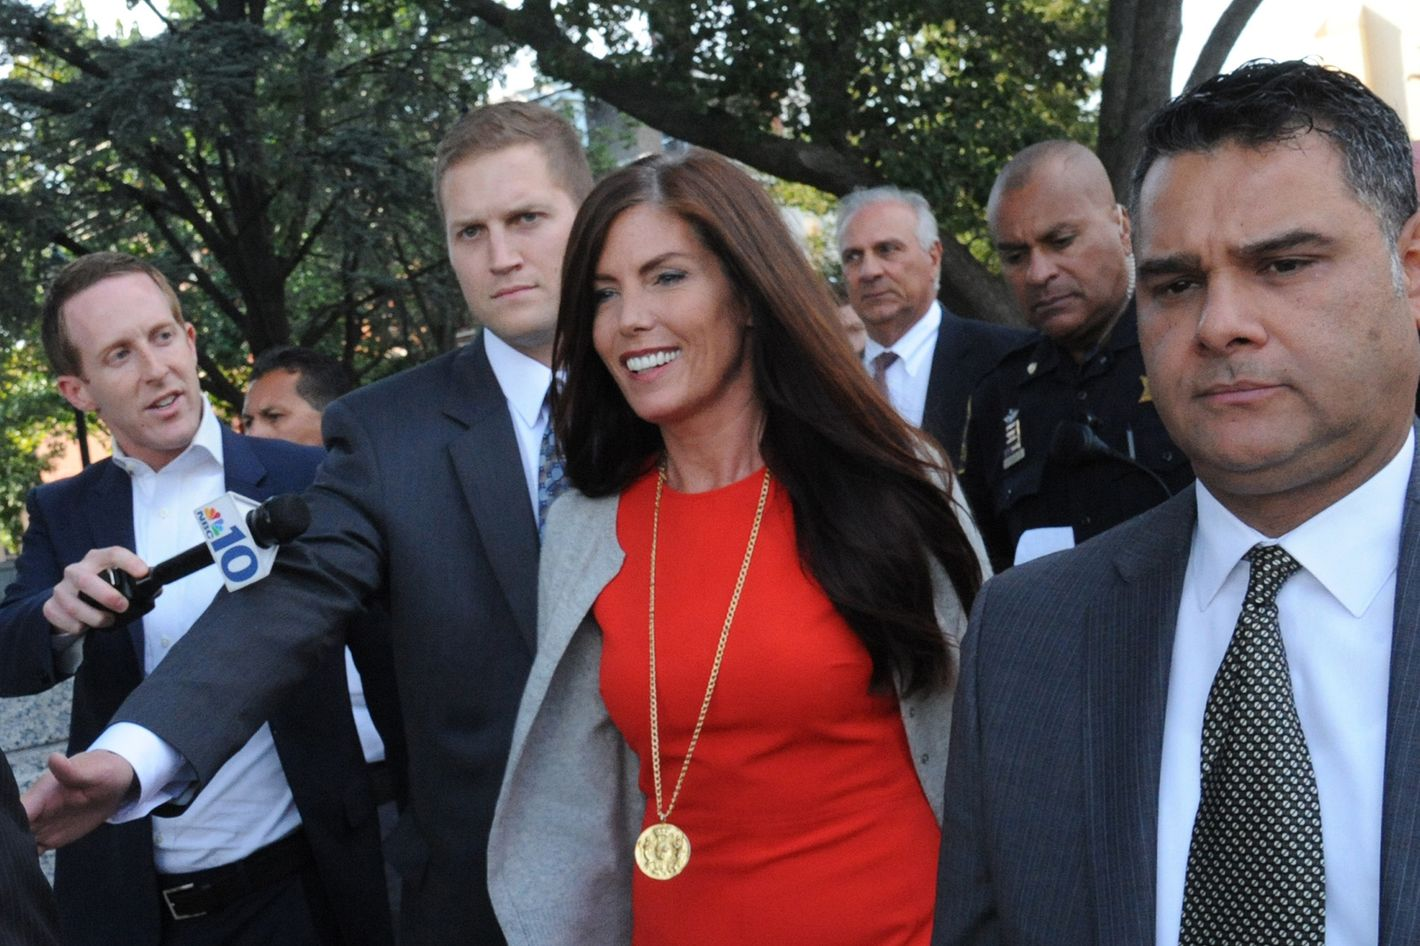 Pennsylvania AG Kathleen Kane to Resign Following Conviction